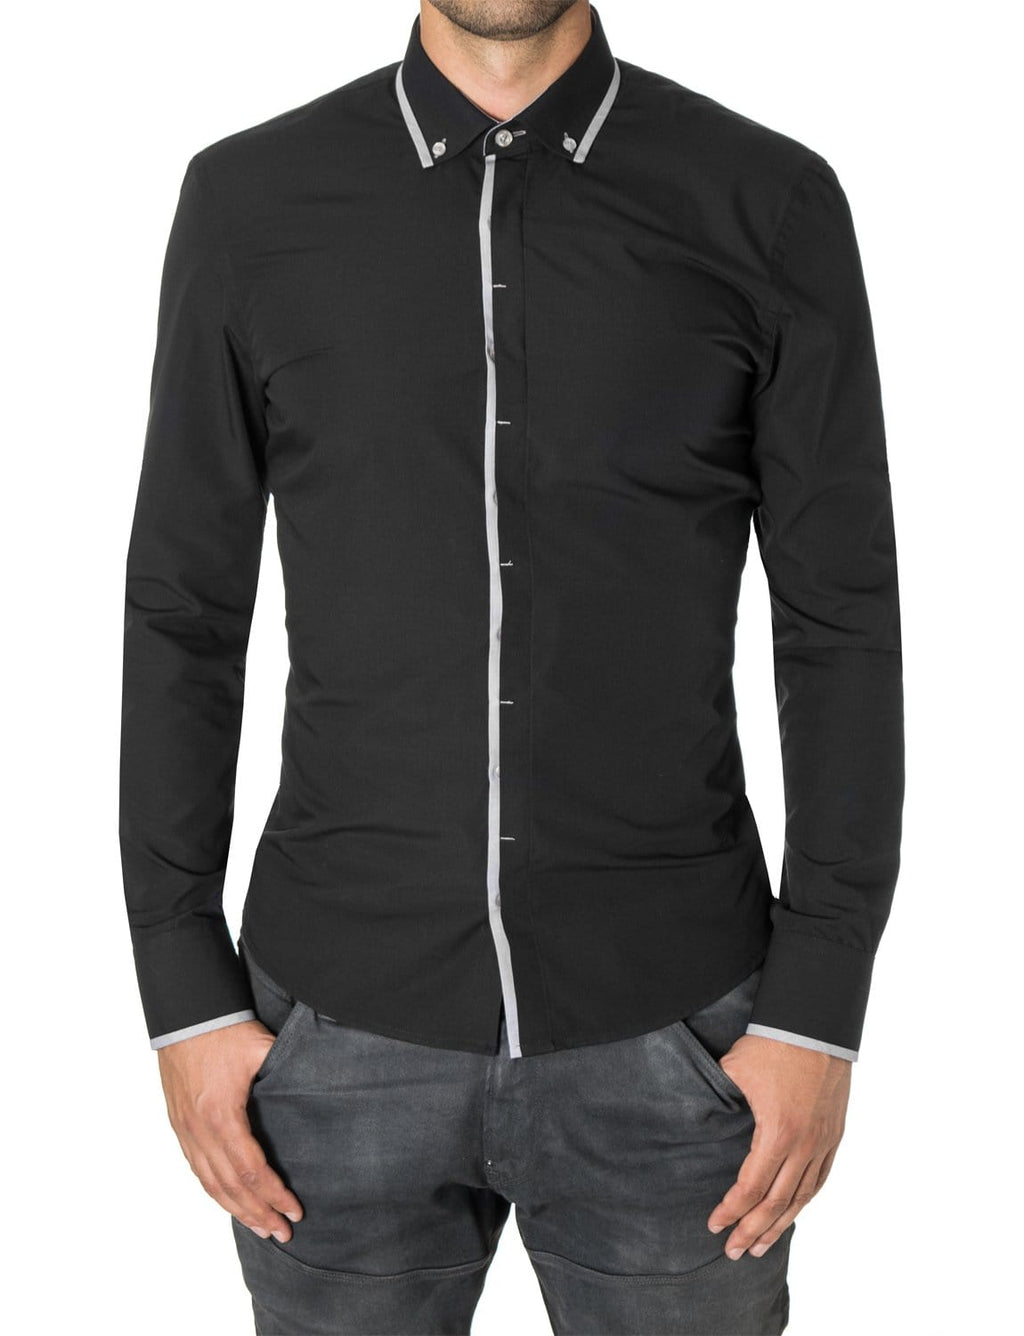 Mens button-down shirt black (MOD1445LS) - MODERNO